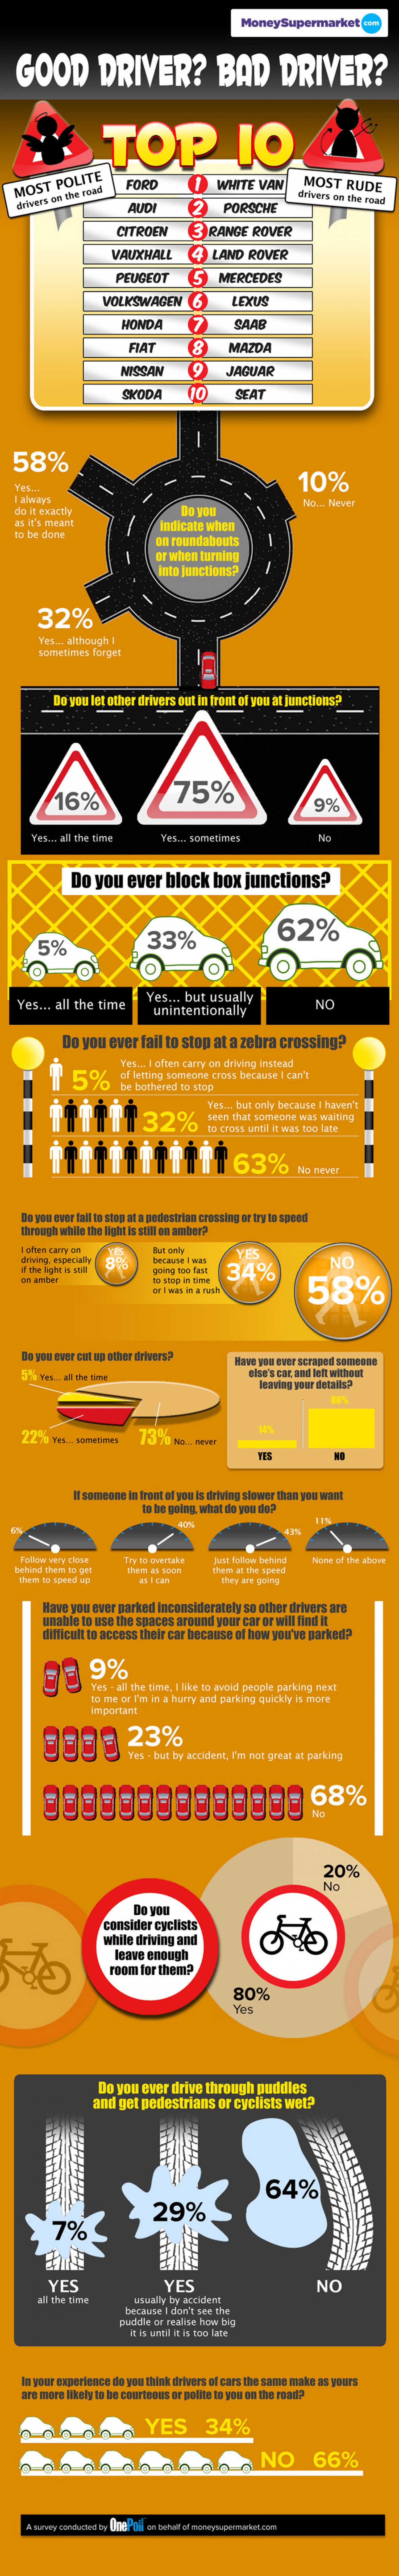 Top Ten Rudest (and Top 10 Most Polite) Drivers Infographic